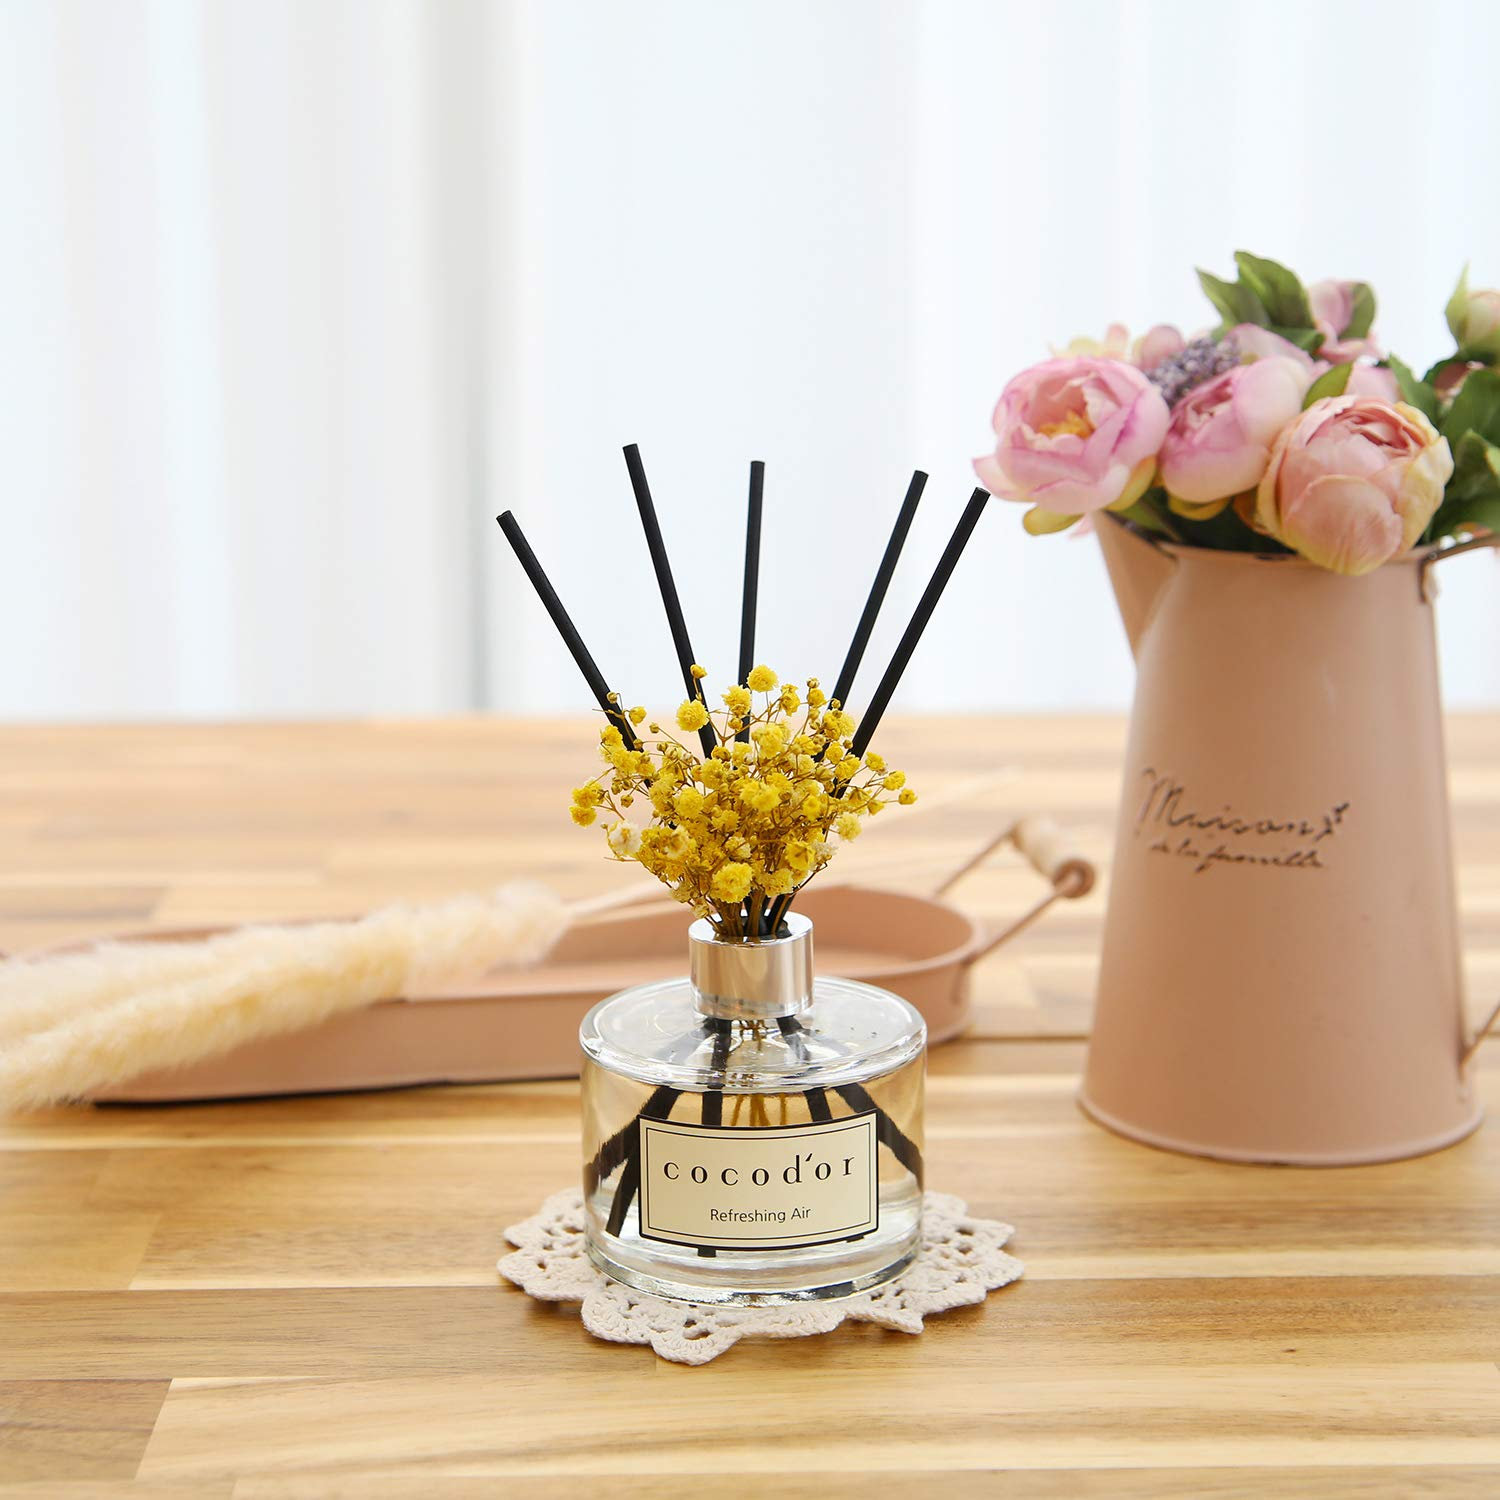 Cocod'or Flower Diffuser/6.7oz/Black Cherry/2 Pack by Cocod'or (Image #7)